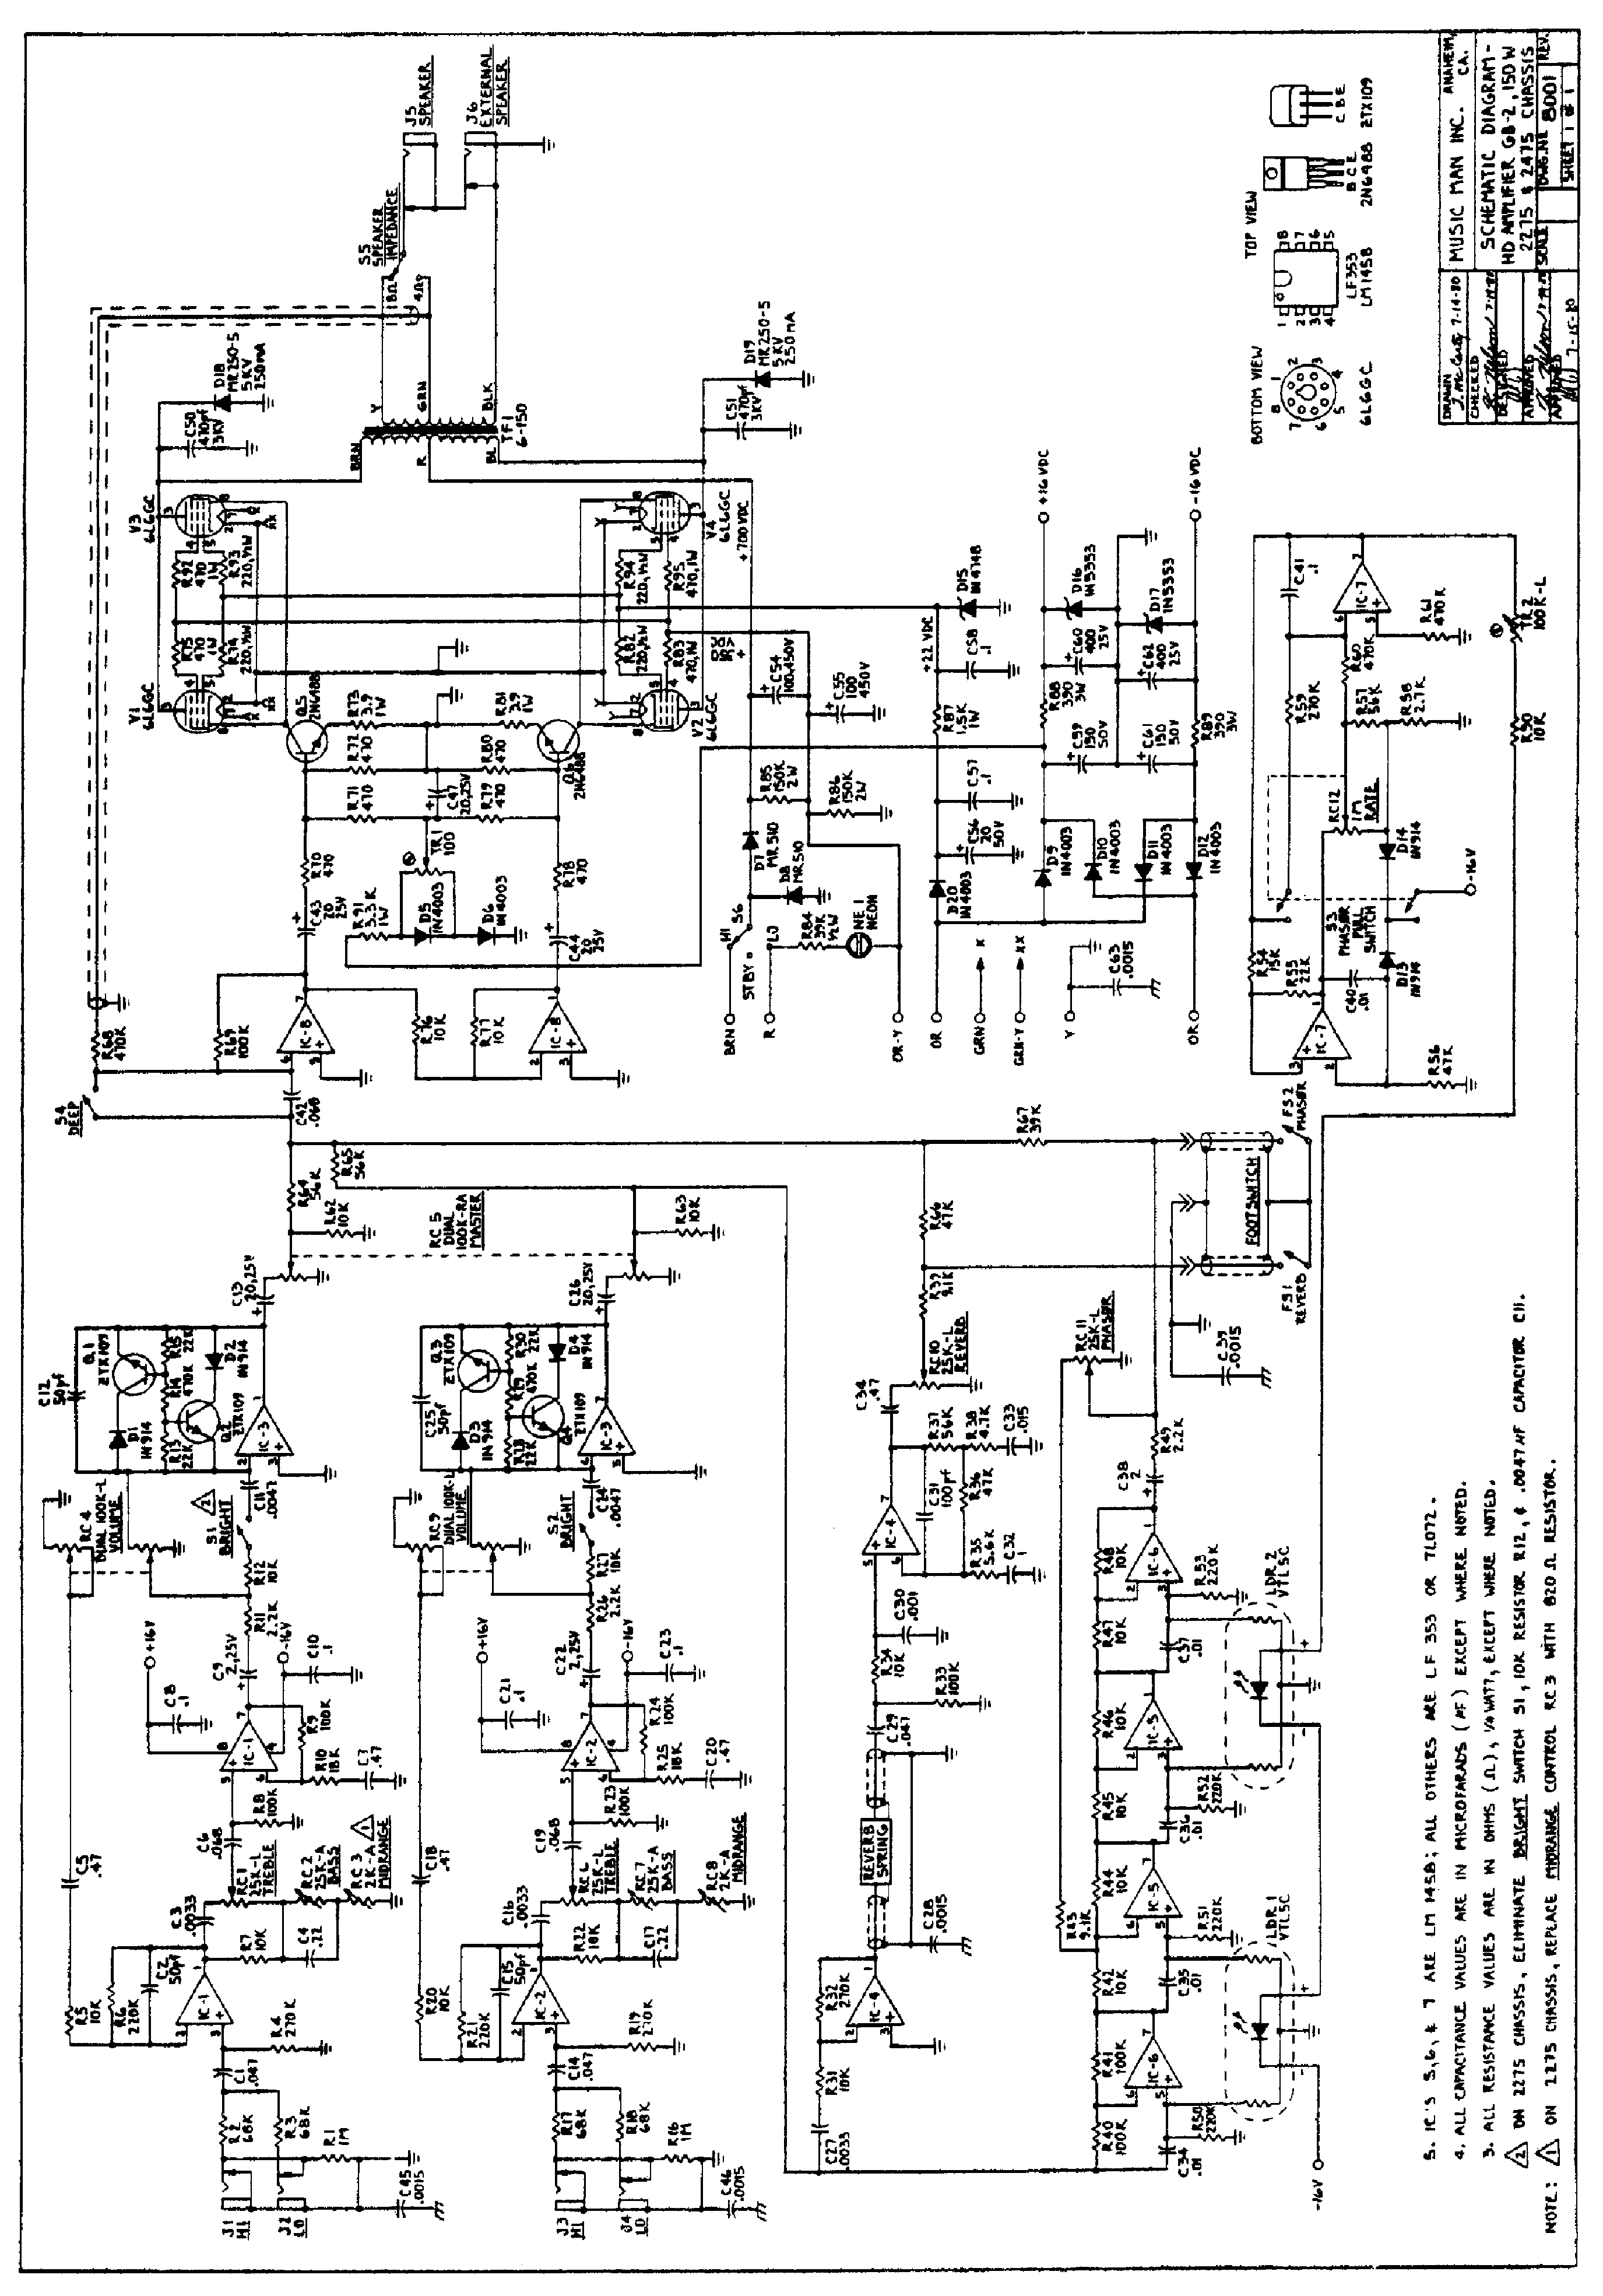 egnater wiring diagram gmc fuse box diagrams wiring